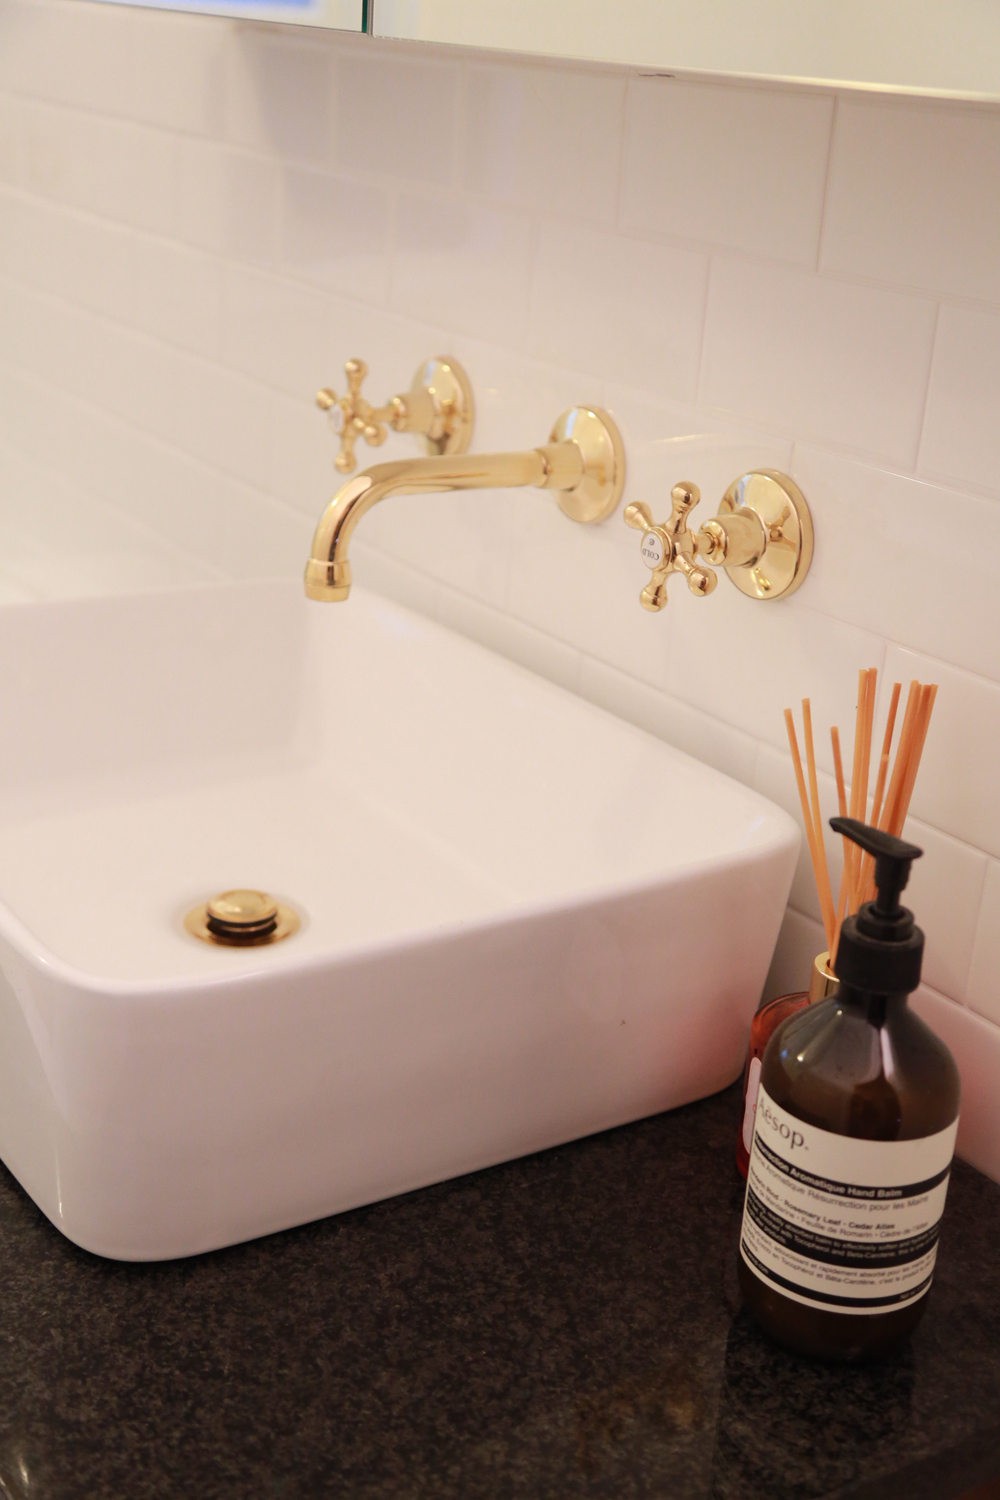 Roulette Bath Set (Basin Configuration) in Antique Brass finish